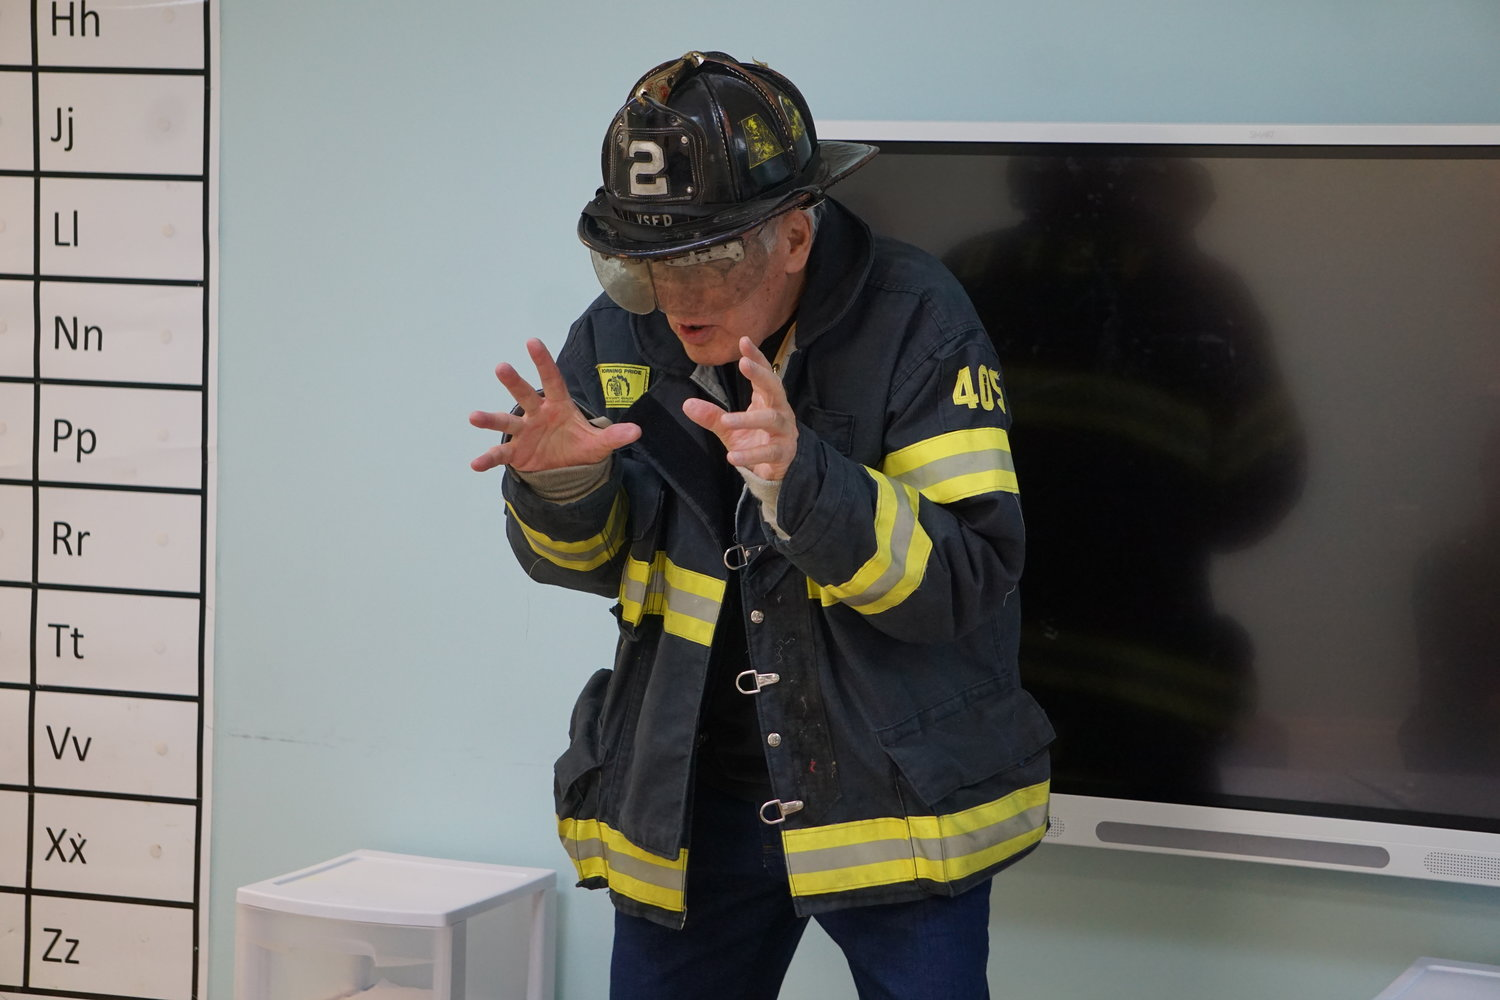 Longtime Valley Stream firefighter Fred Gless explained how a firefighter's helmet works to a class of special-education students on Nov. 15.